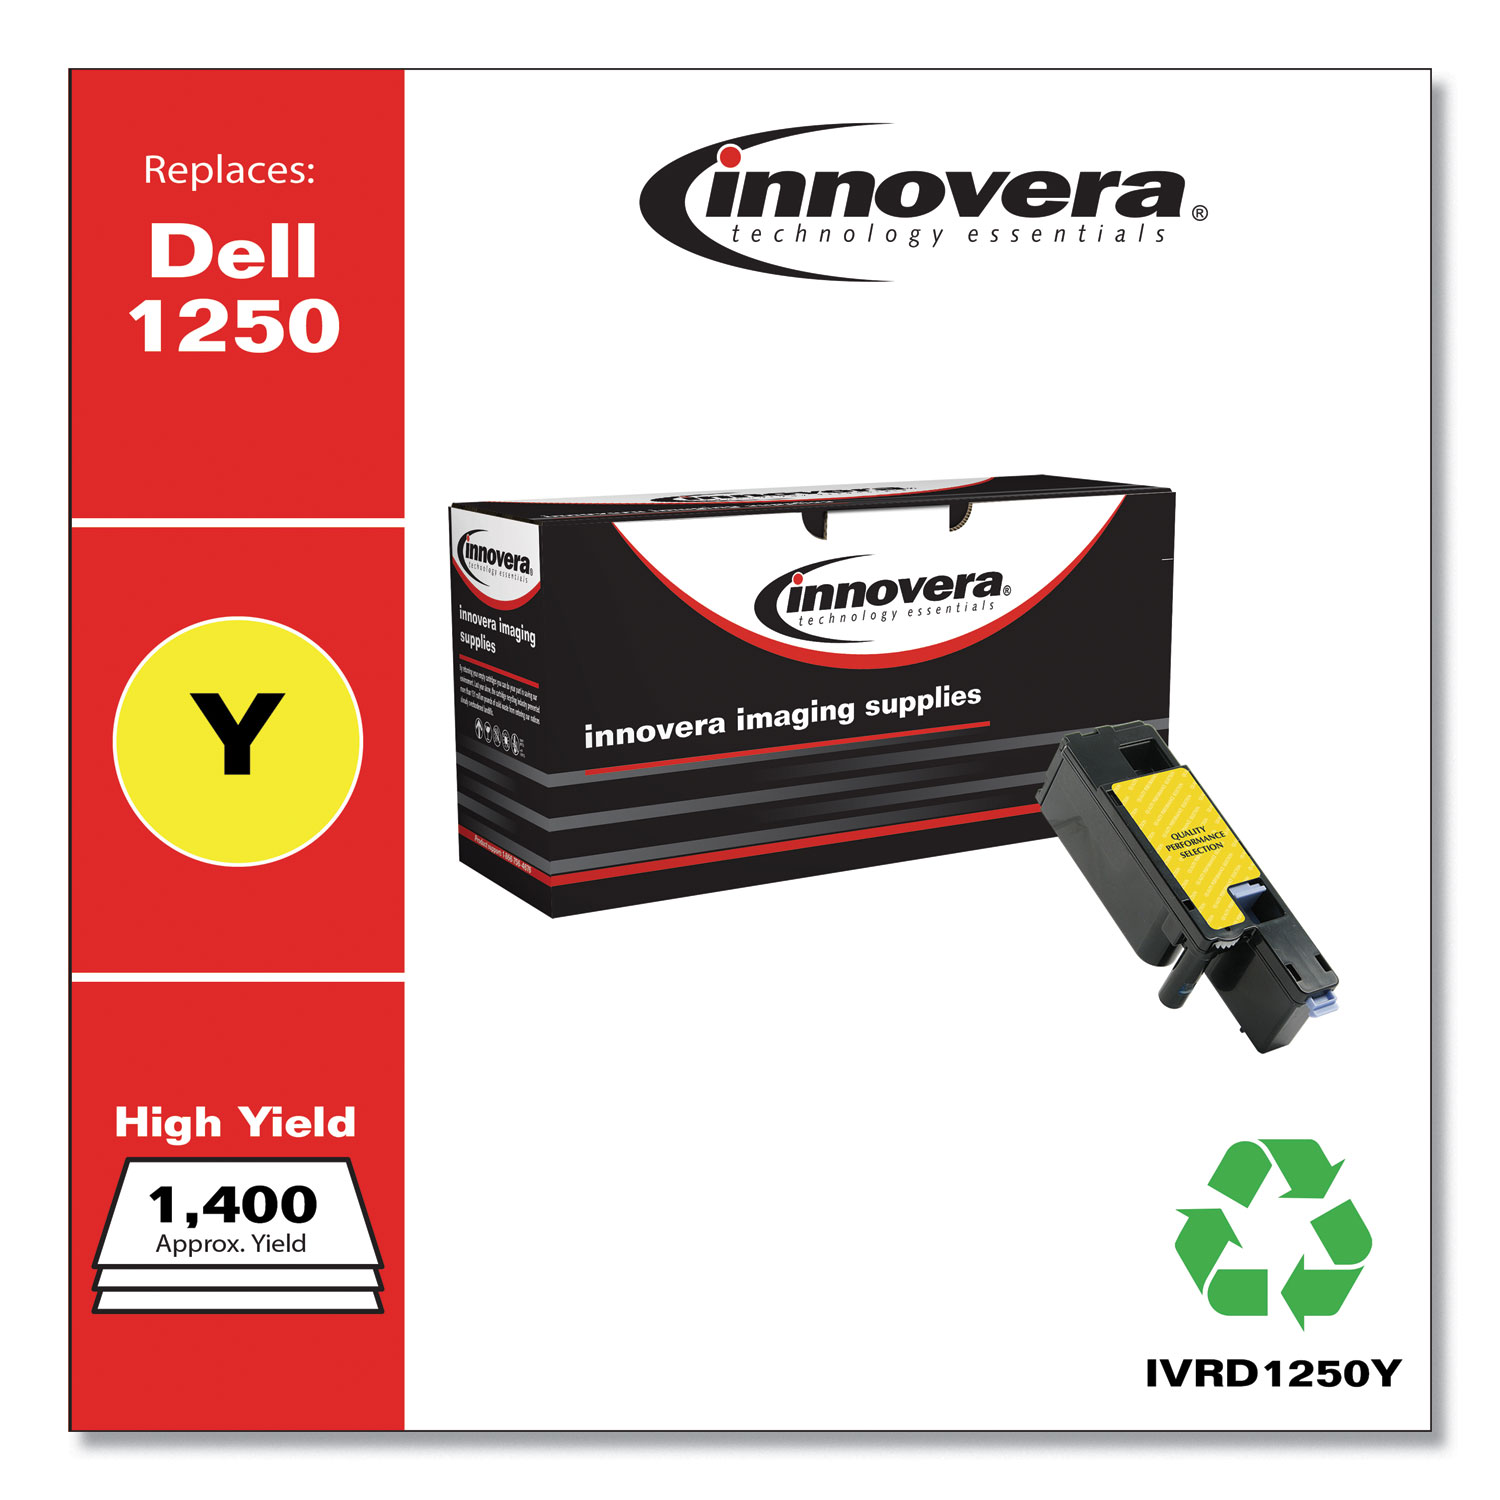 Remanufactured Yellow High-Yield Toner, Replacement for Dell 1250 (331-0779), 1,400 Page-Yield IVRD1250Y